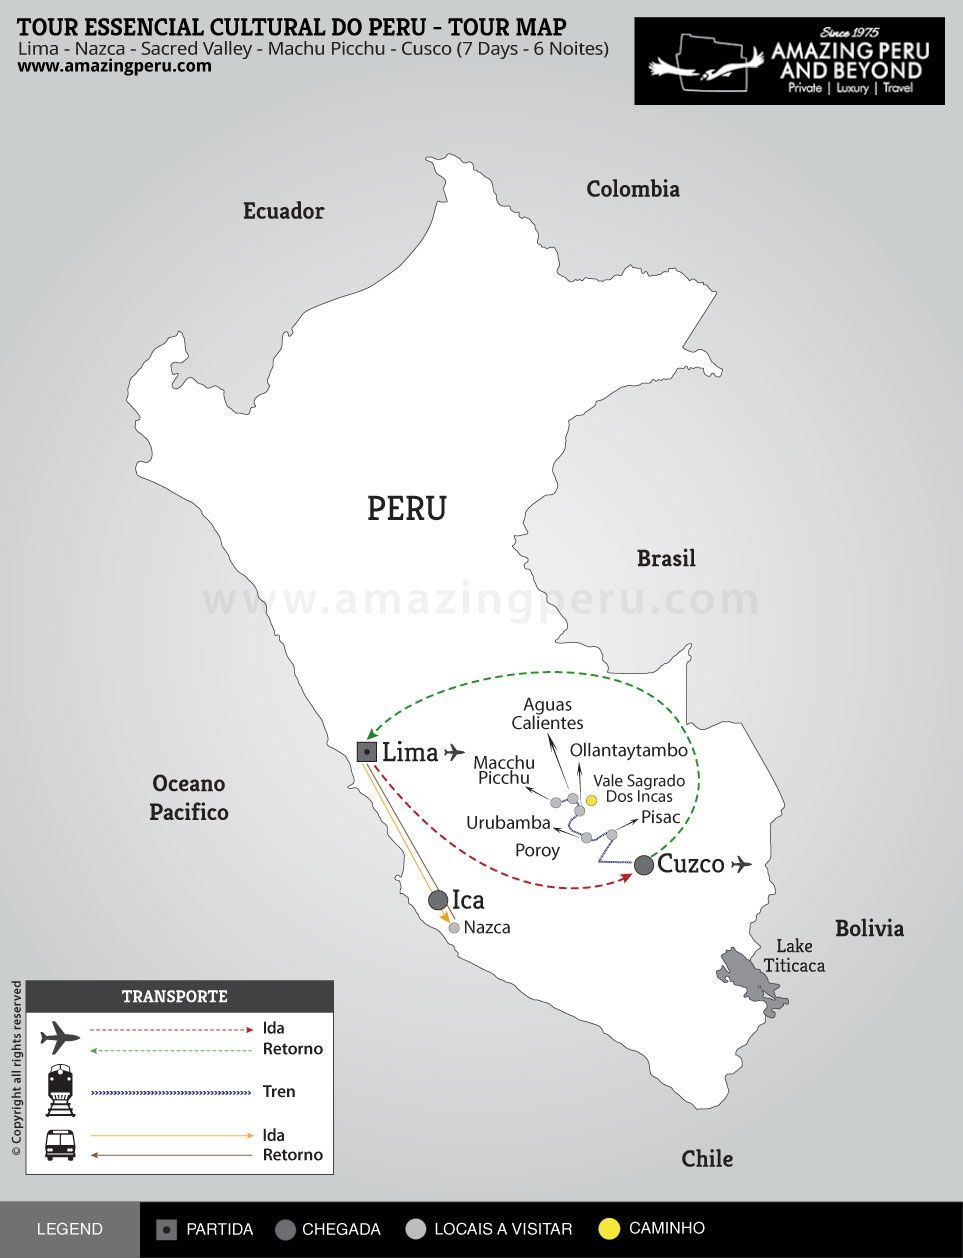 Tour Essencial cultural do Peru - 7 days / 6 nights.